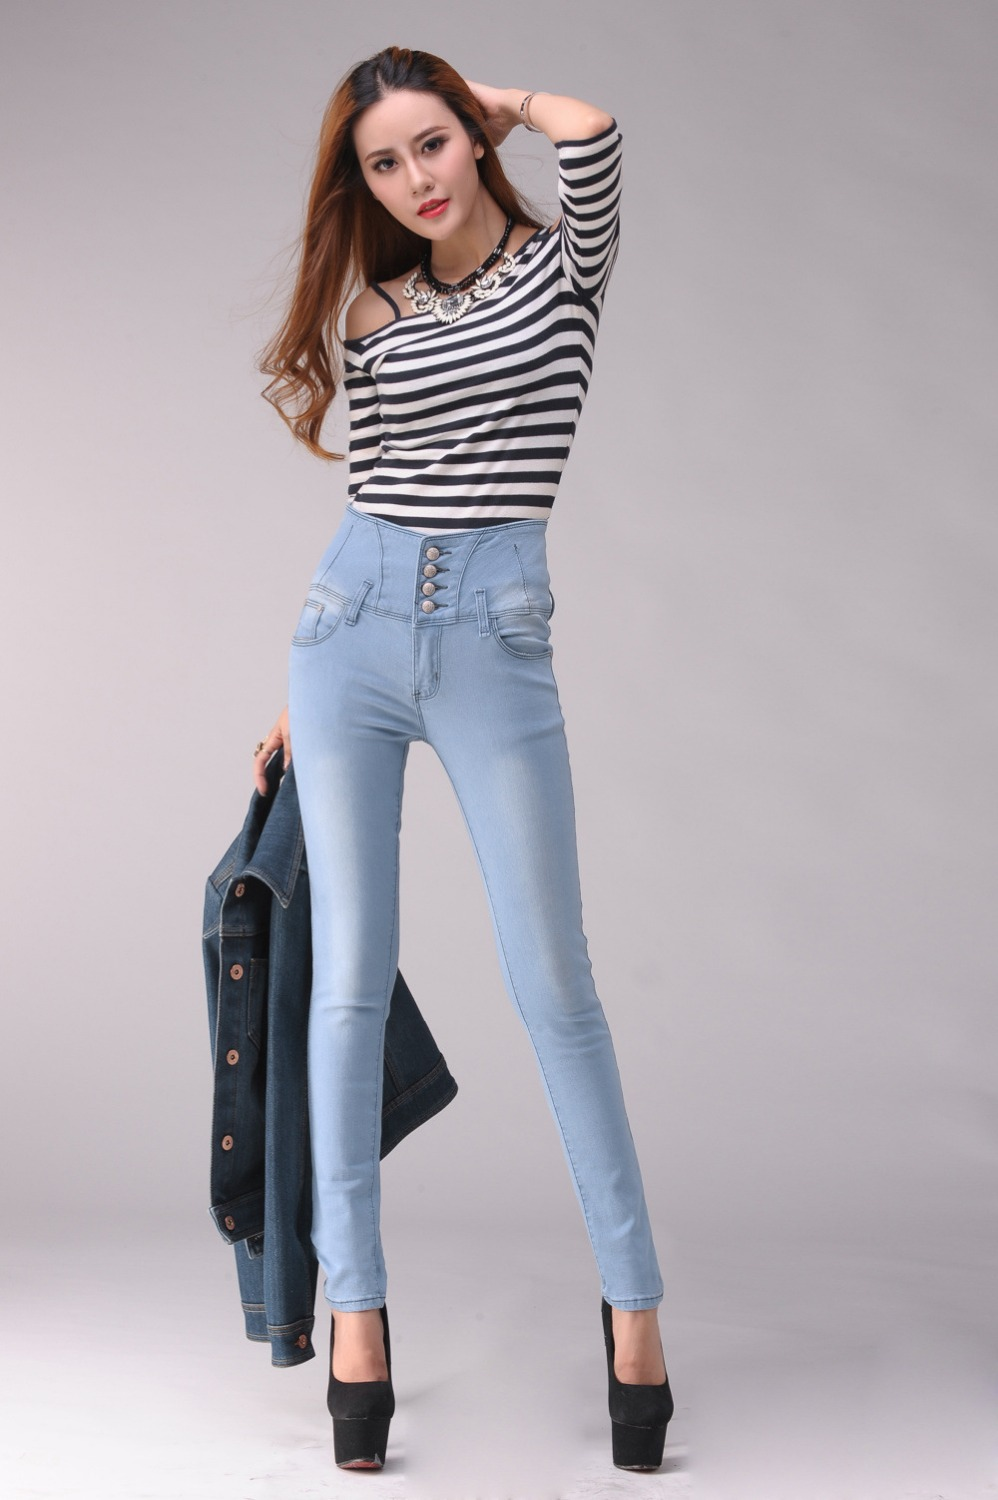 Aliexpress.com : Buy high waist jeans Women Sexy Pencil Denim ...